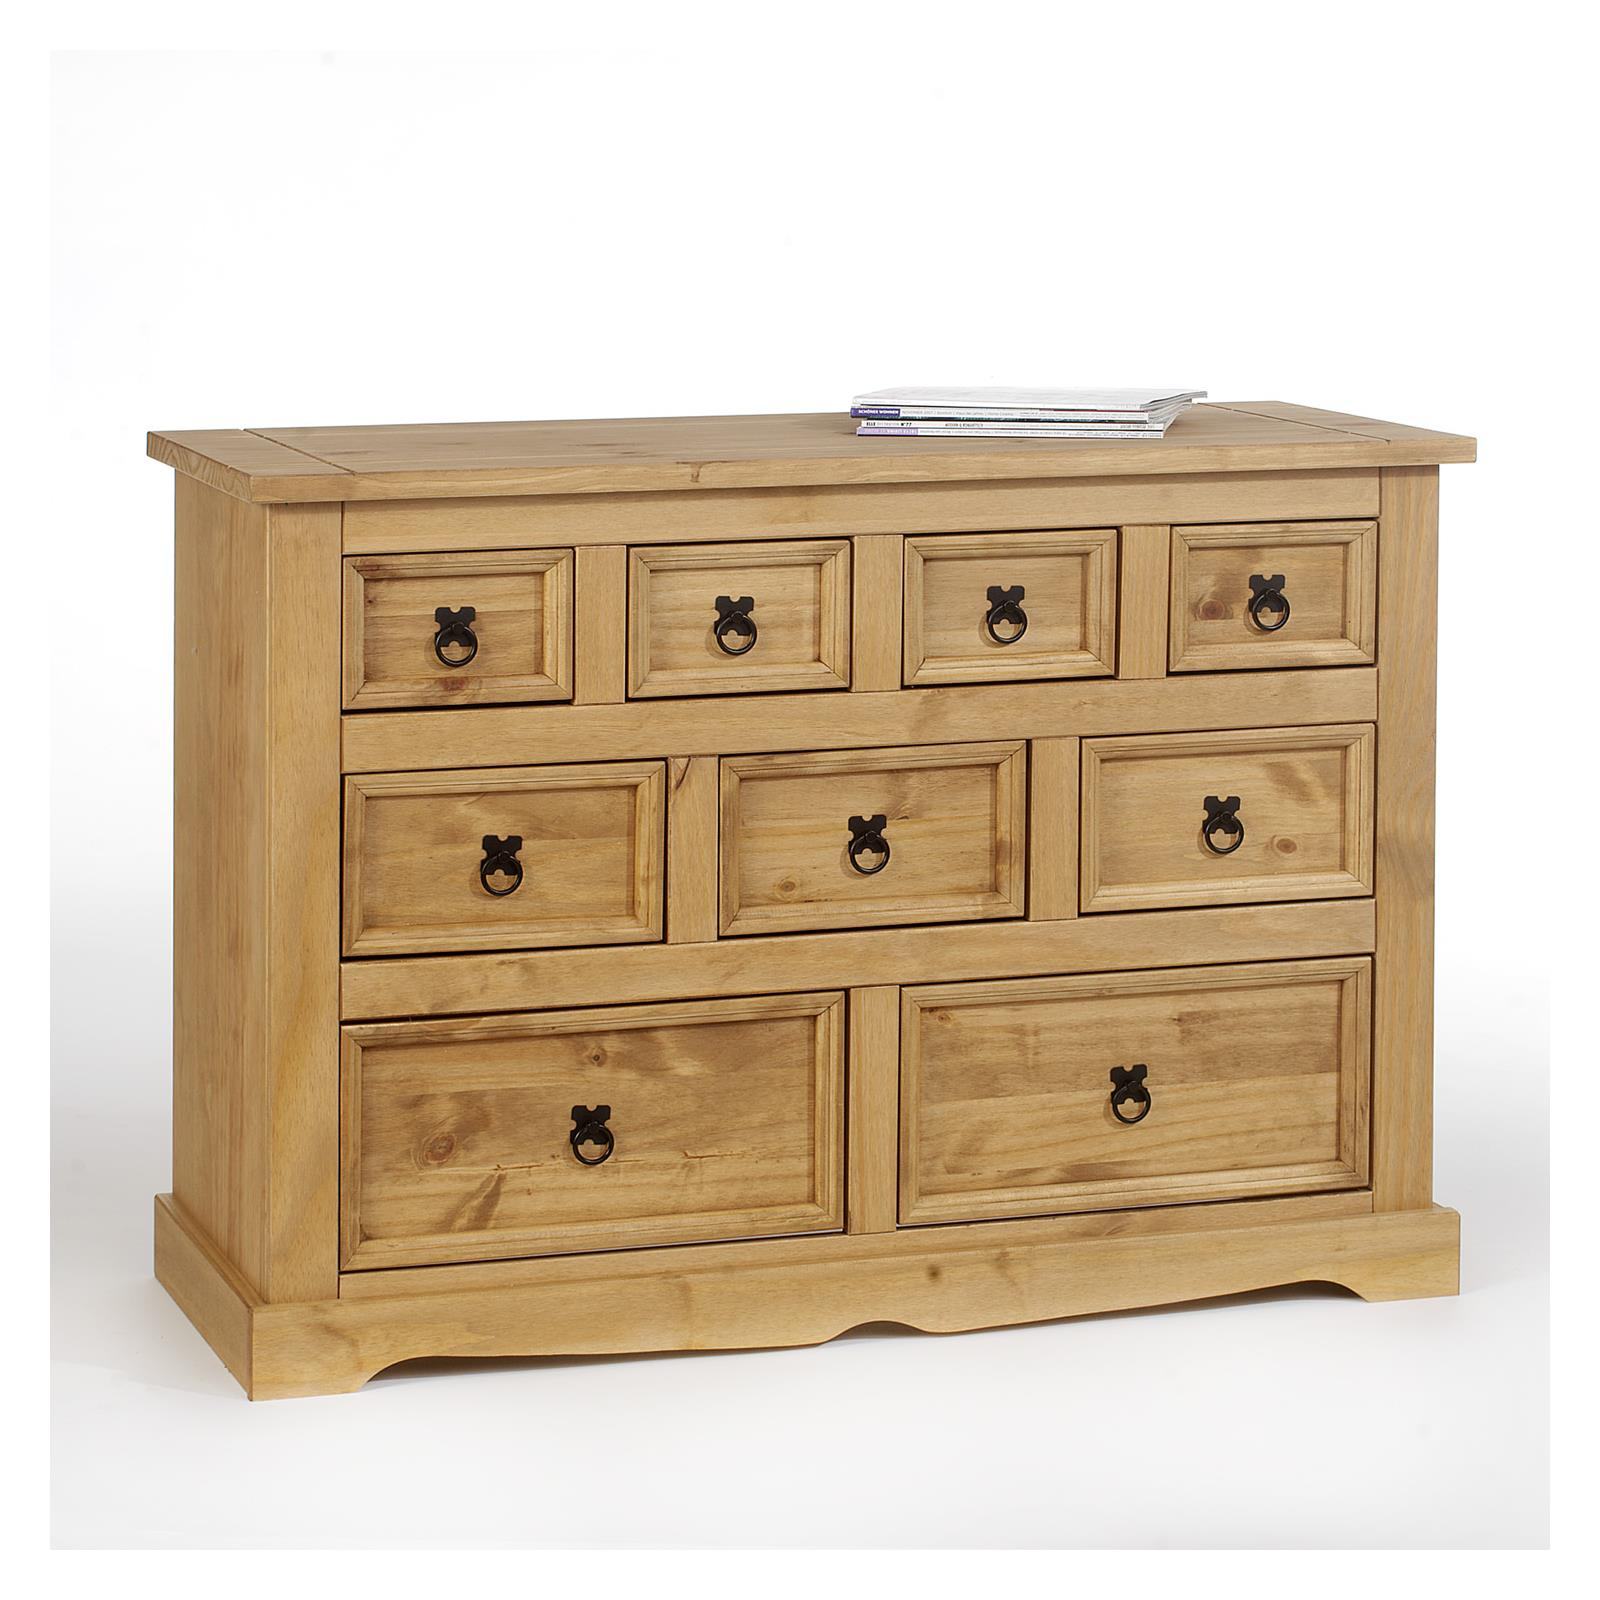 Commode en pin tequila style mexicain 9 tiroirs finition for Meuble a chaussure carrefour